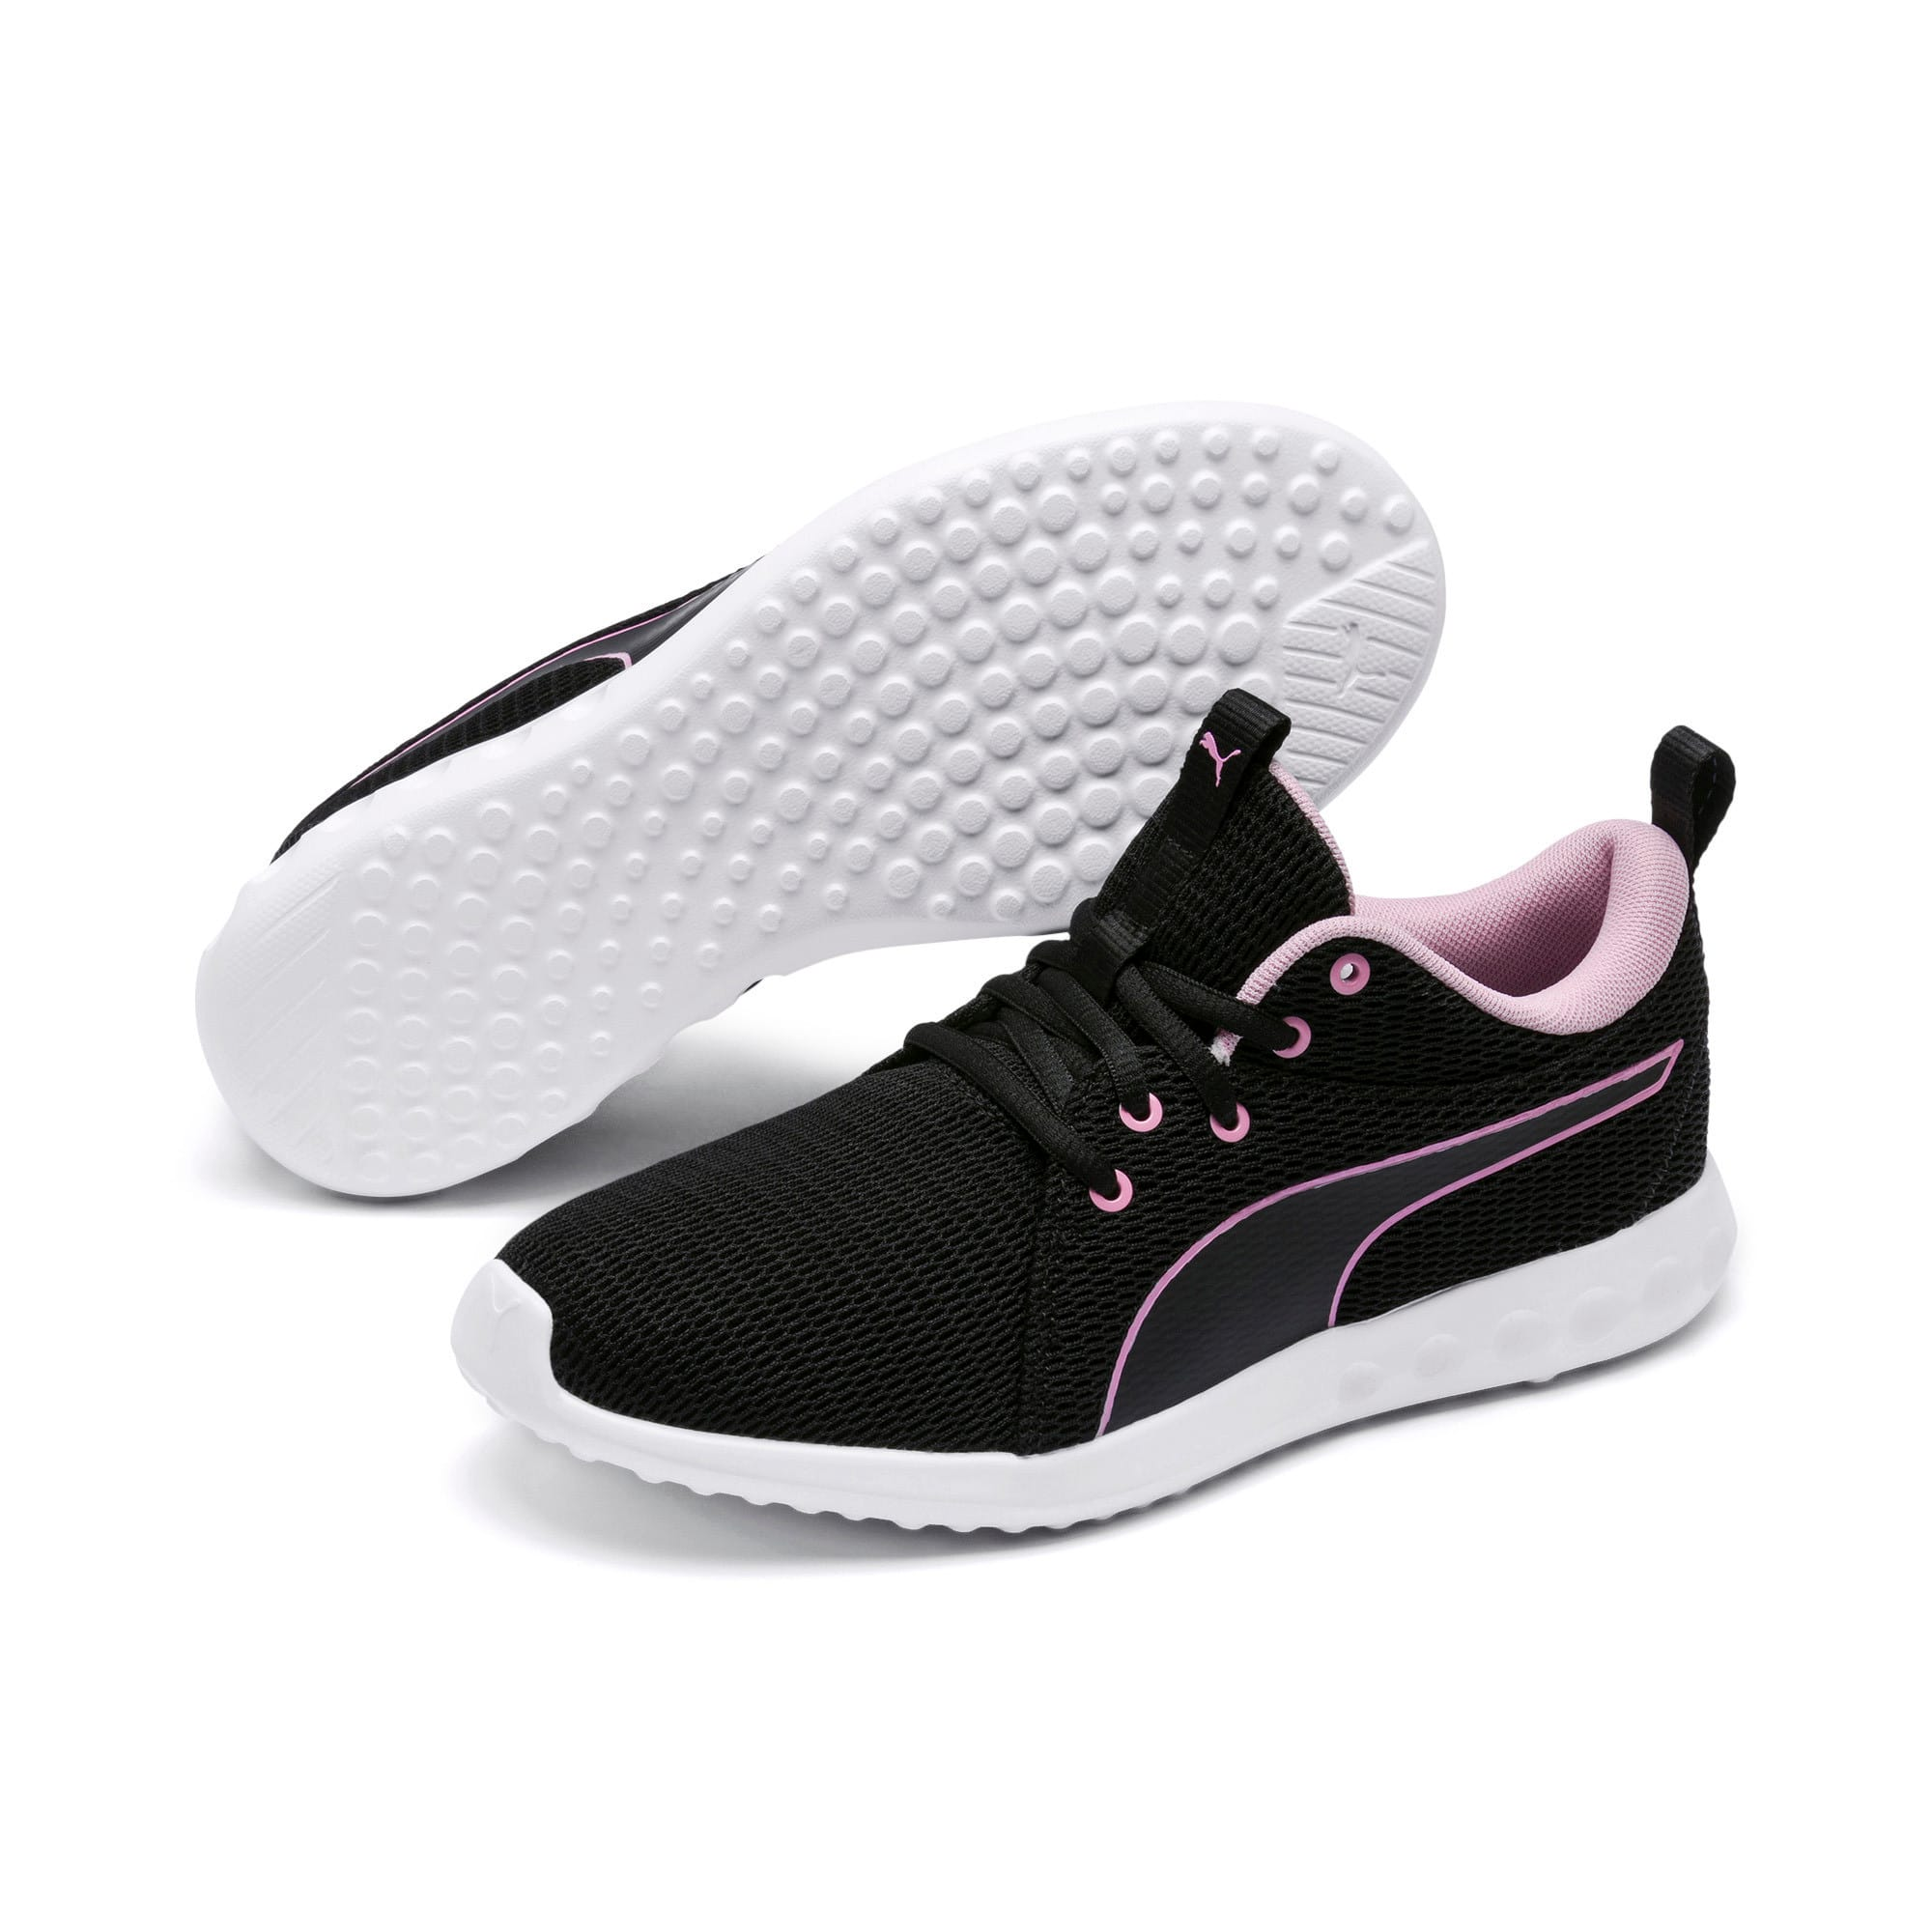 Thumbnail 2 of Carson 2 New Core Women's Trainers, Puma Black-Pale Pink, medium